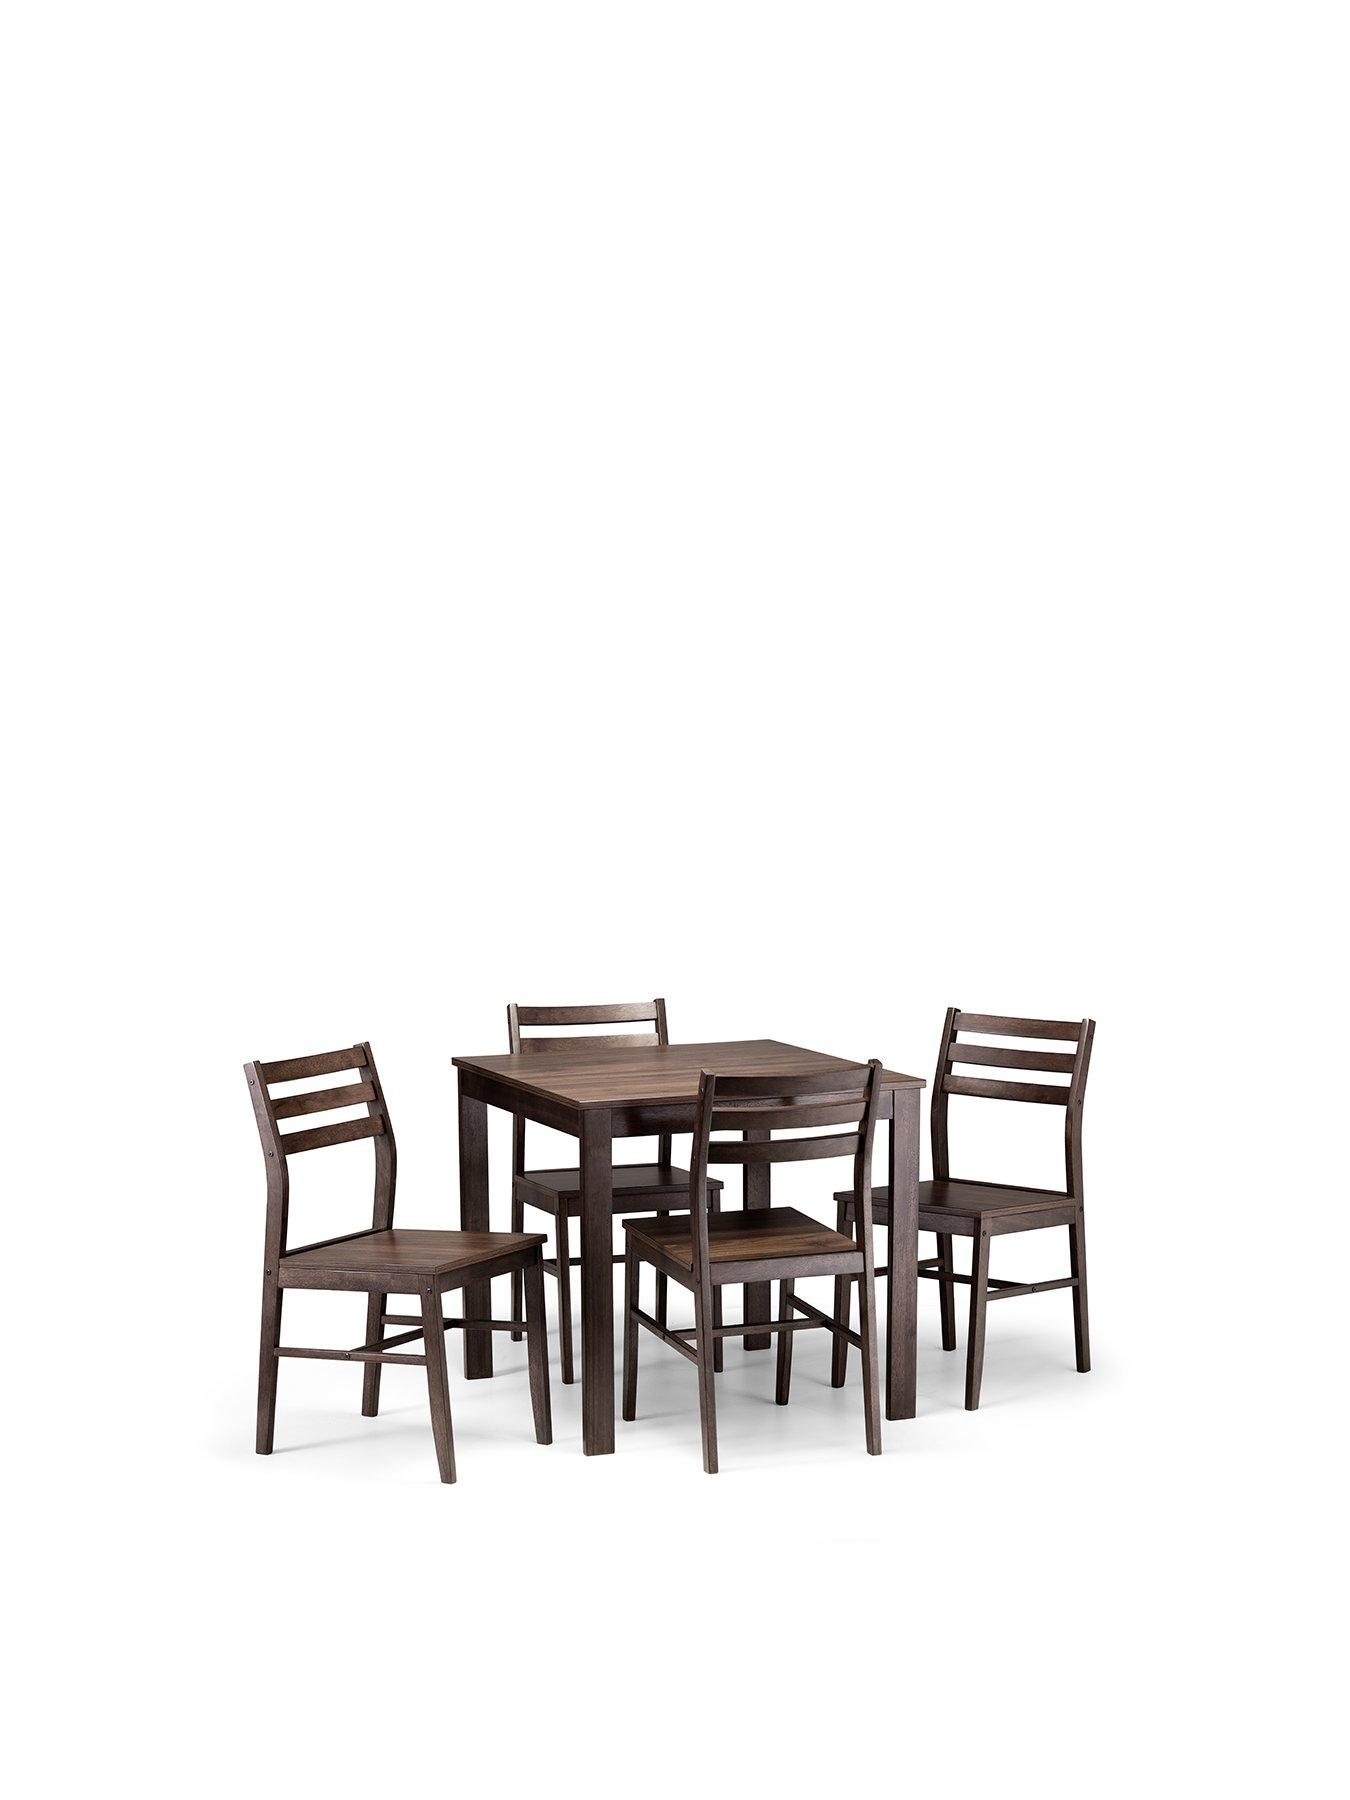 Julian Bowen Monterey 80 X 80 Cm Dining Table + 4 Chairs